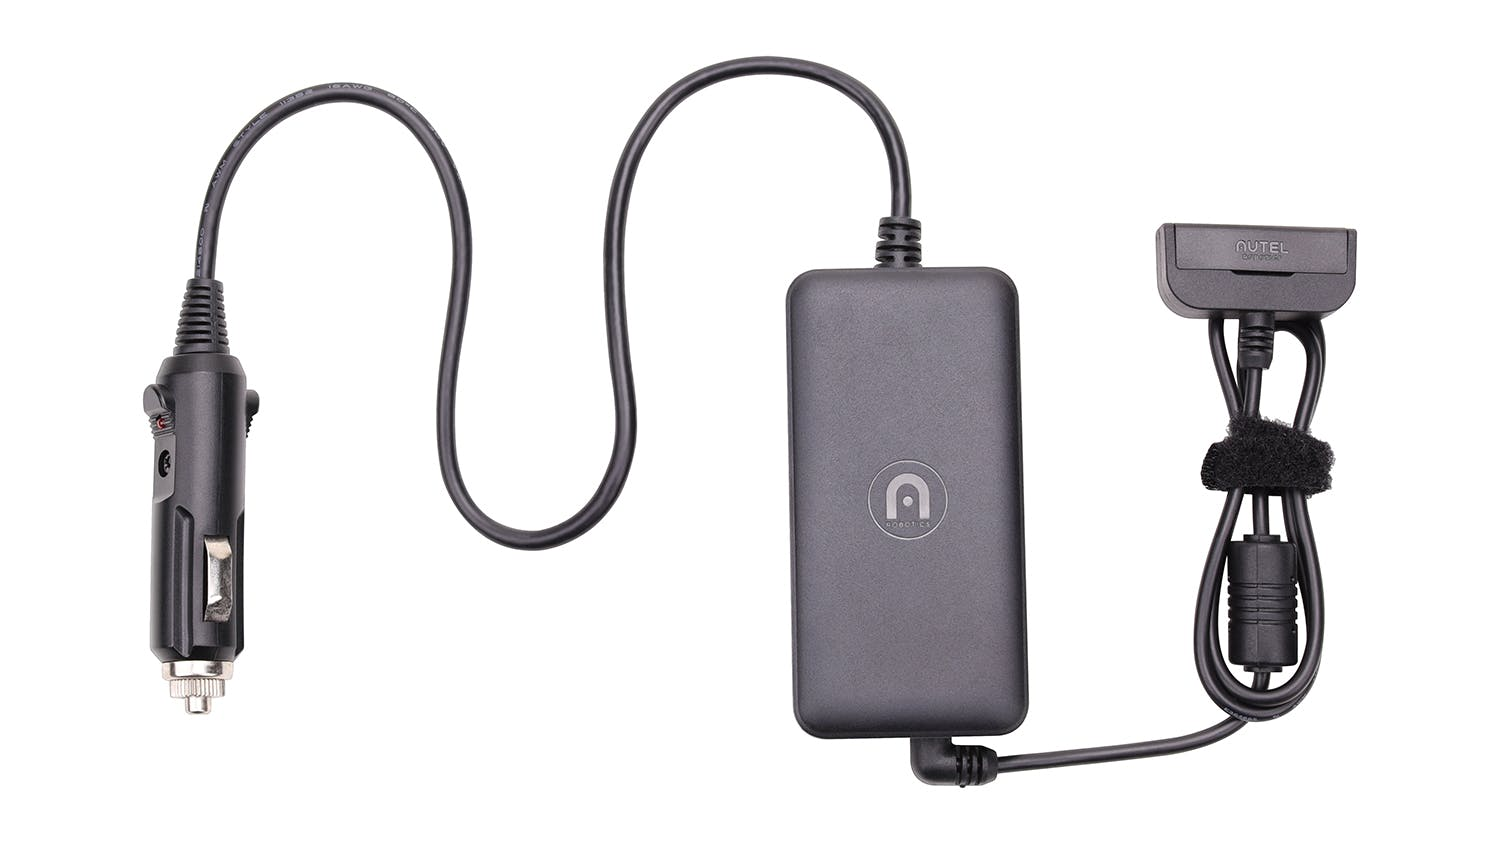 Image of Autel Robotics Car Charger for EVO II